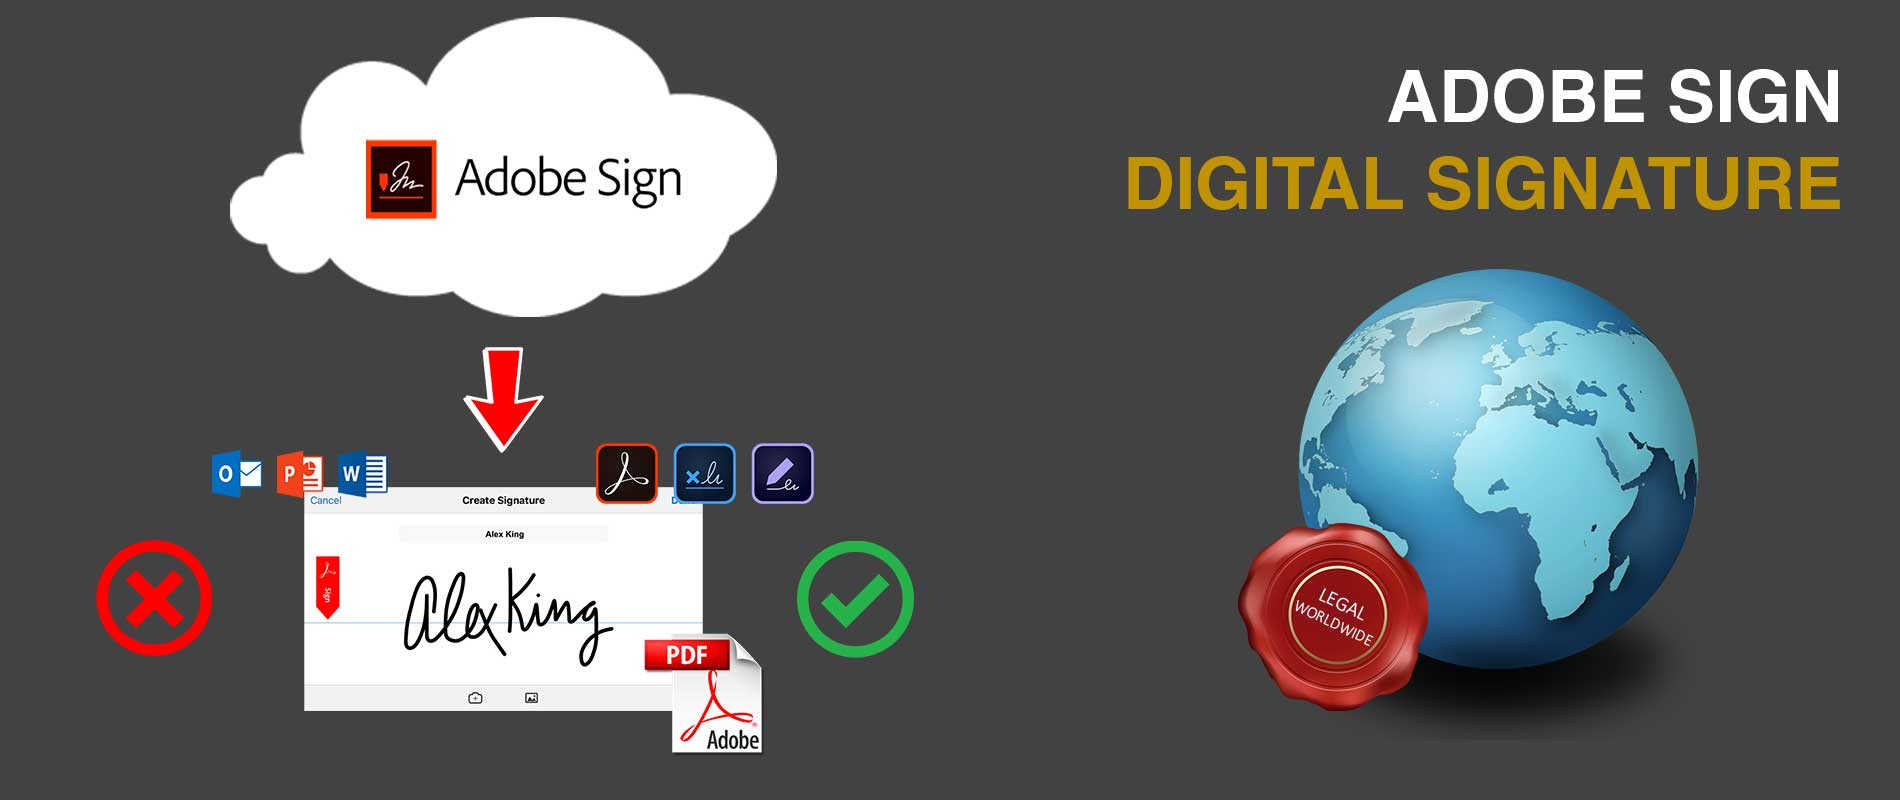 Adobe Sign - DIgital Signature